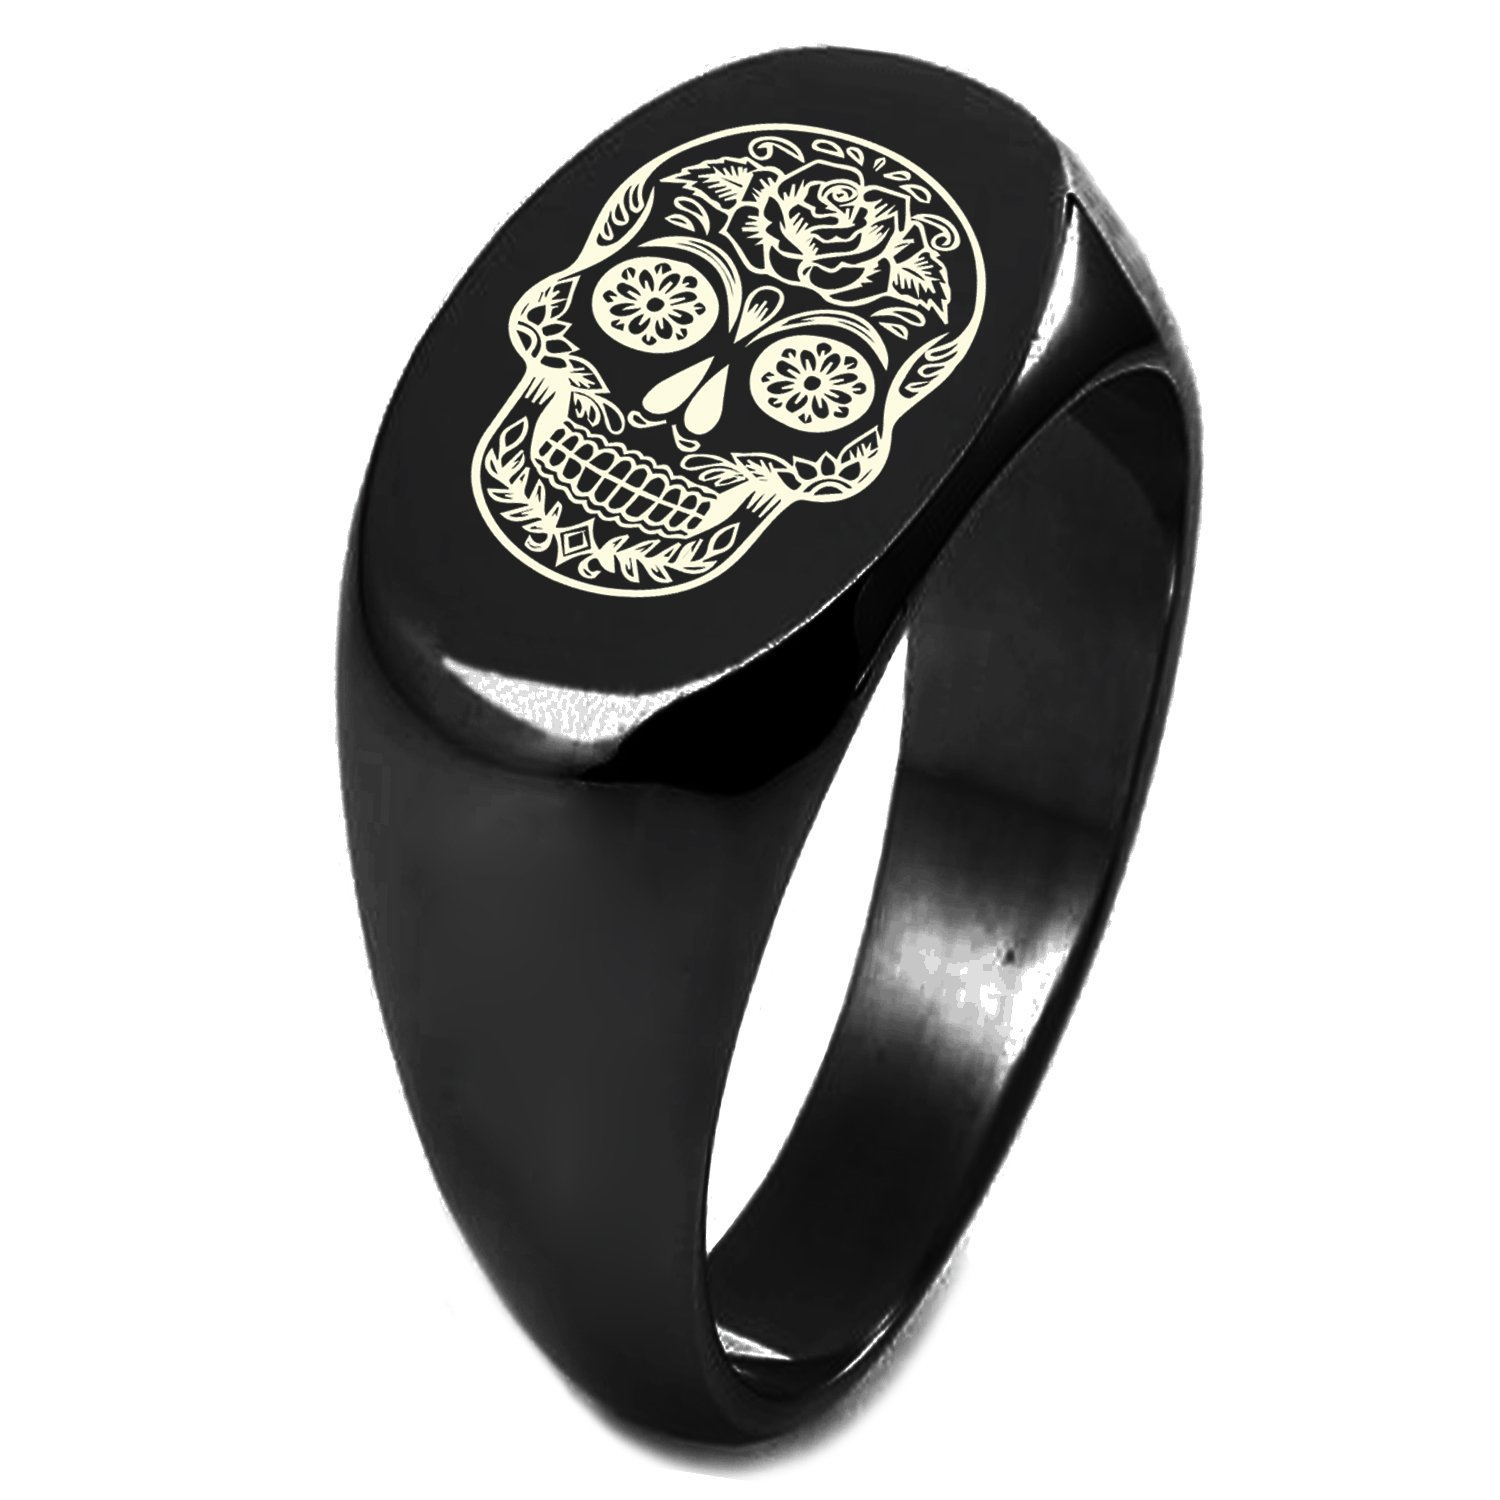 Black IP Plated Sterling Silver Day of the Dead Sugar Skull Symbol Engraved Oval Flat Top Polished Ring, Size 8